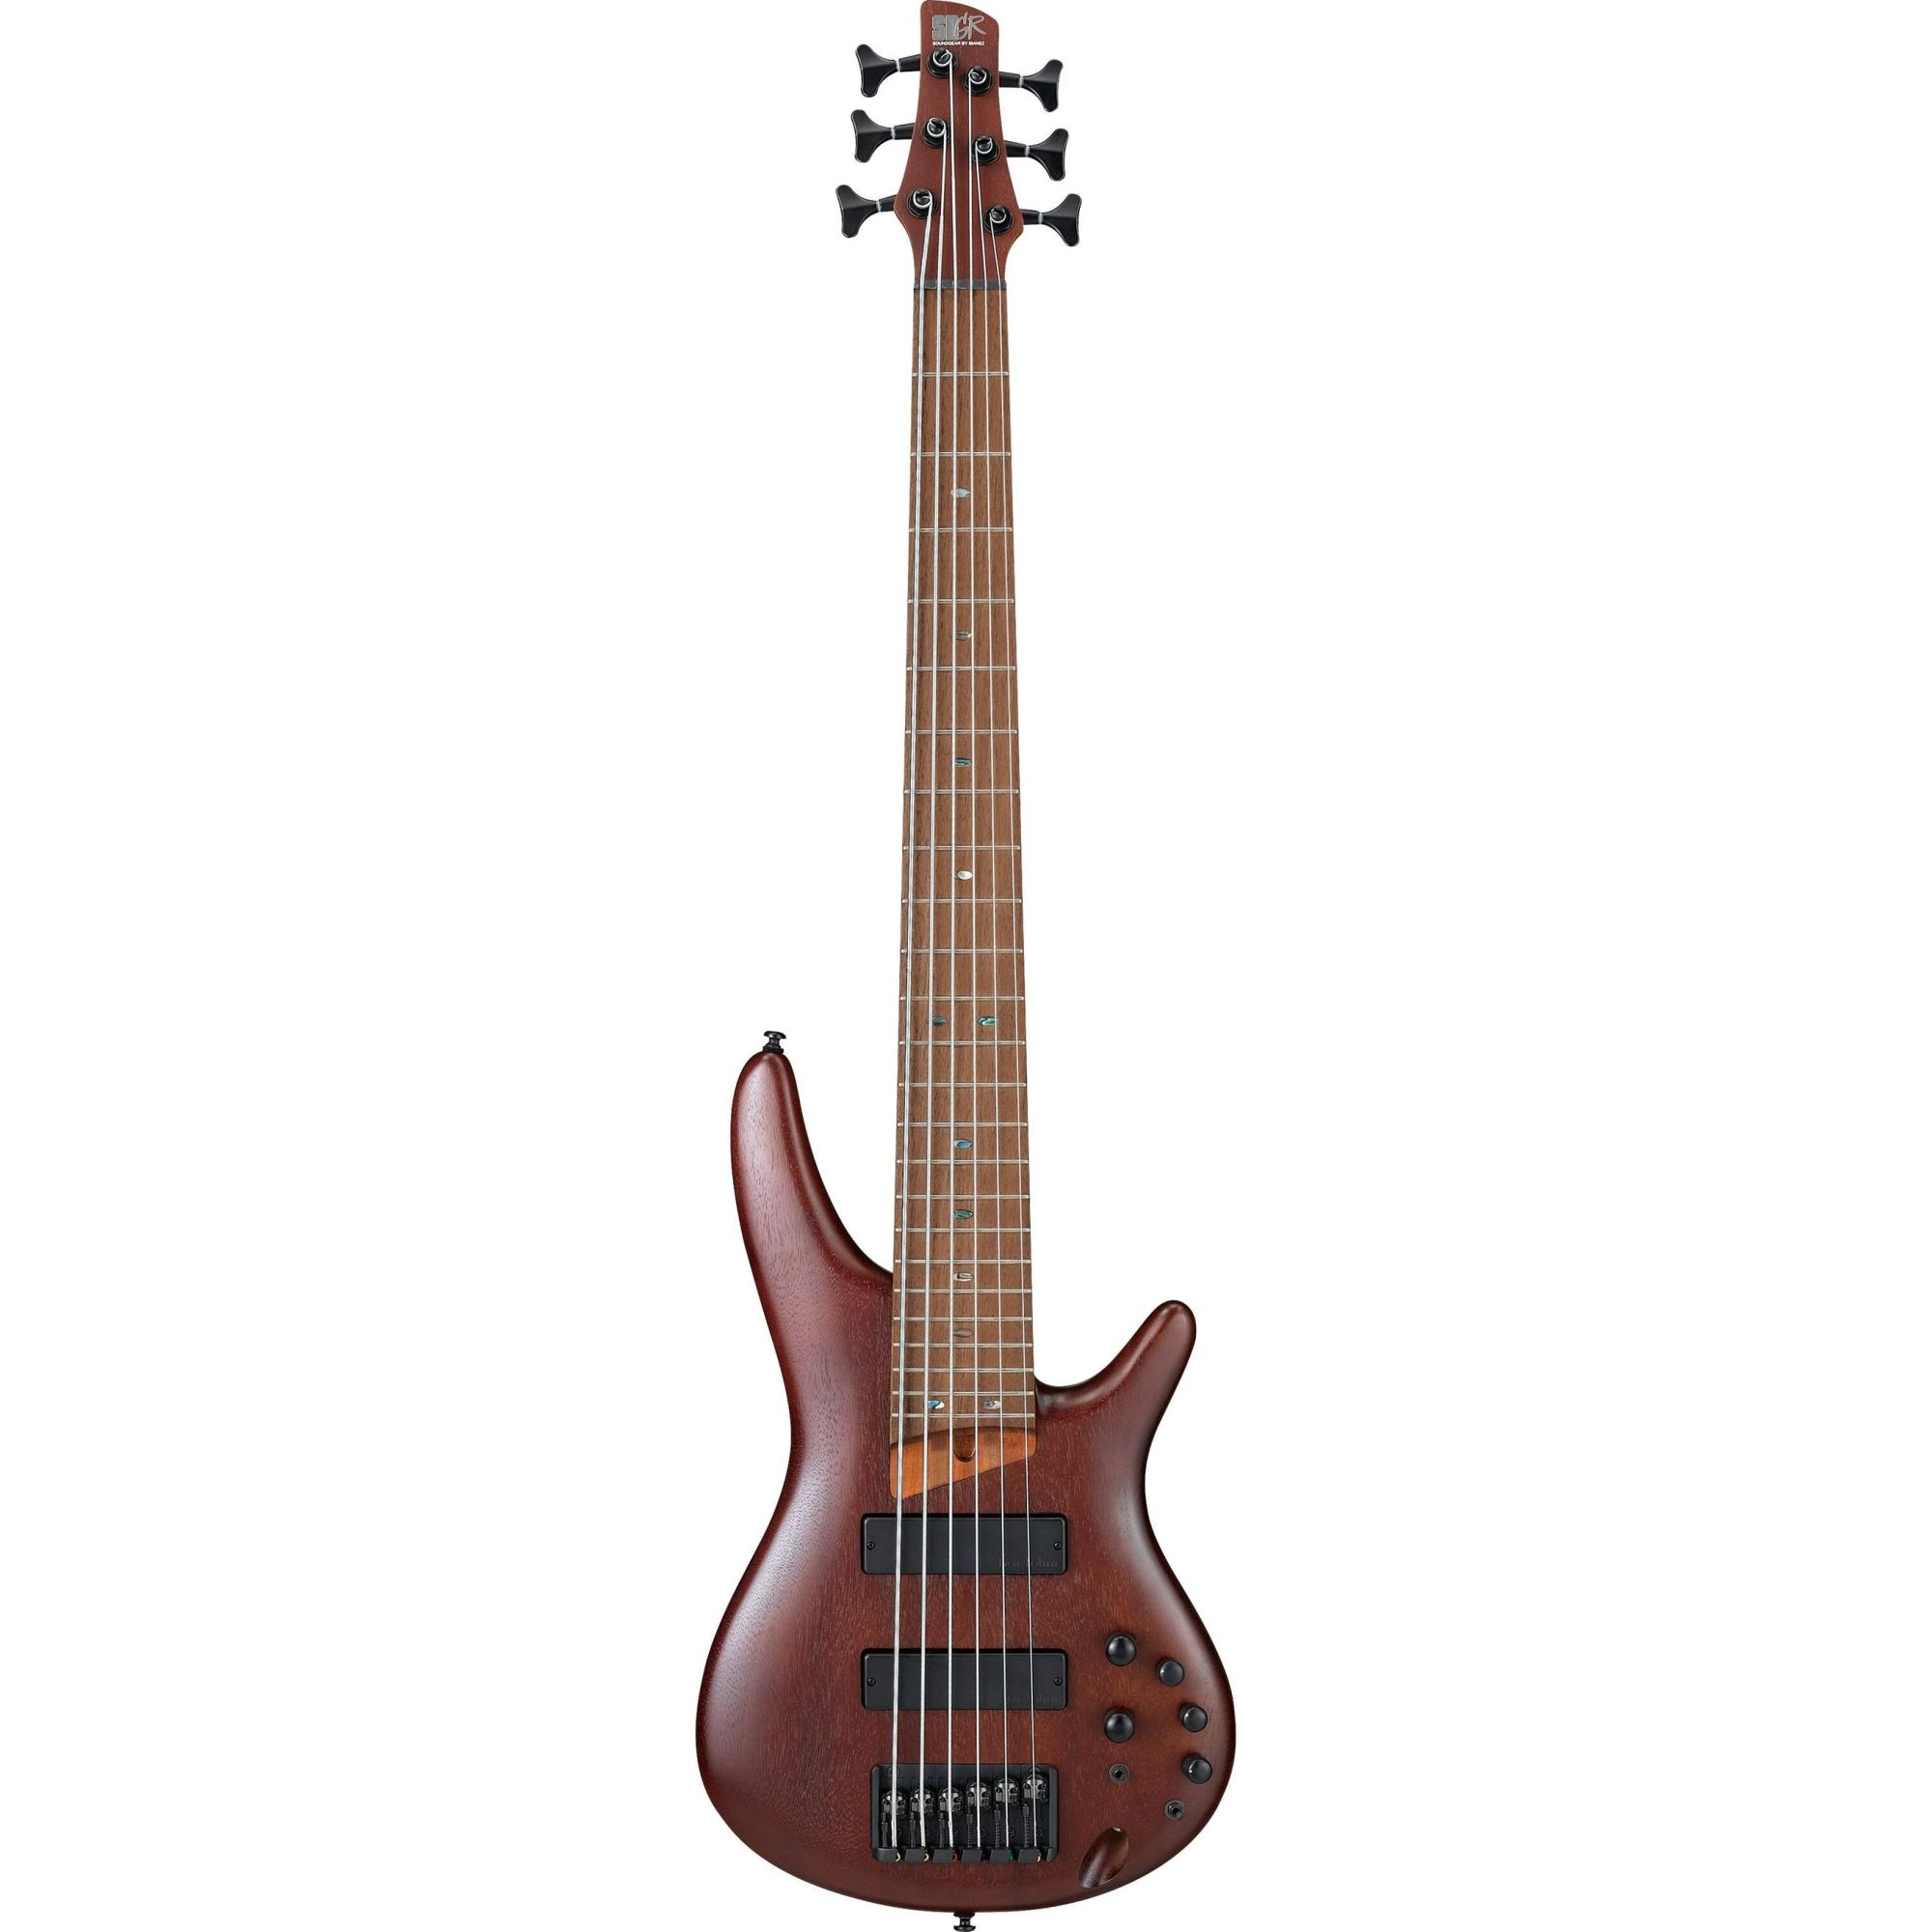 Ibanez SR506e BM 6 string bass guitar online price in india